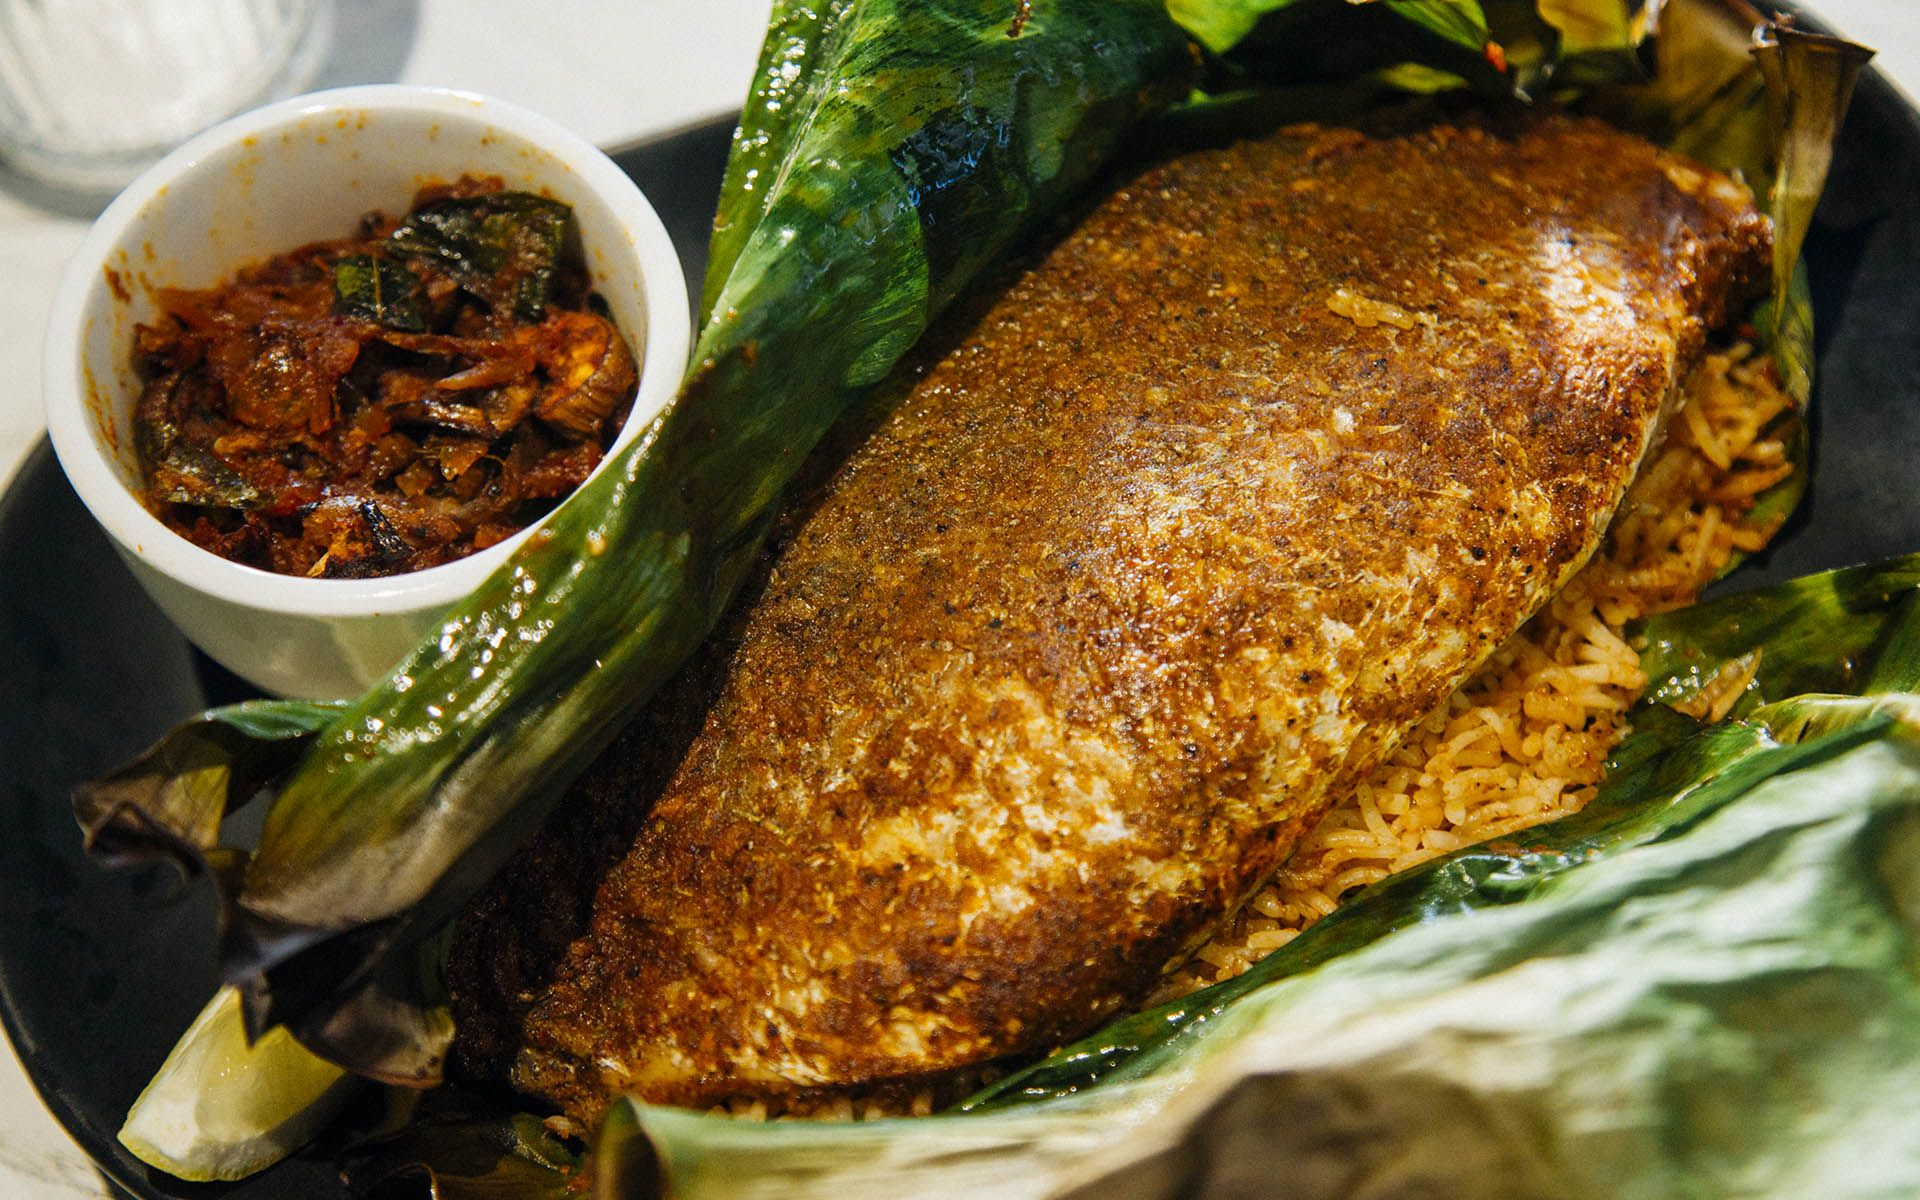 Banana Leaf Baked Sea Bass